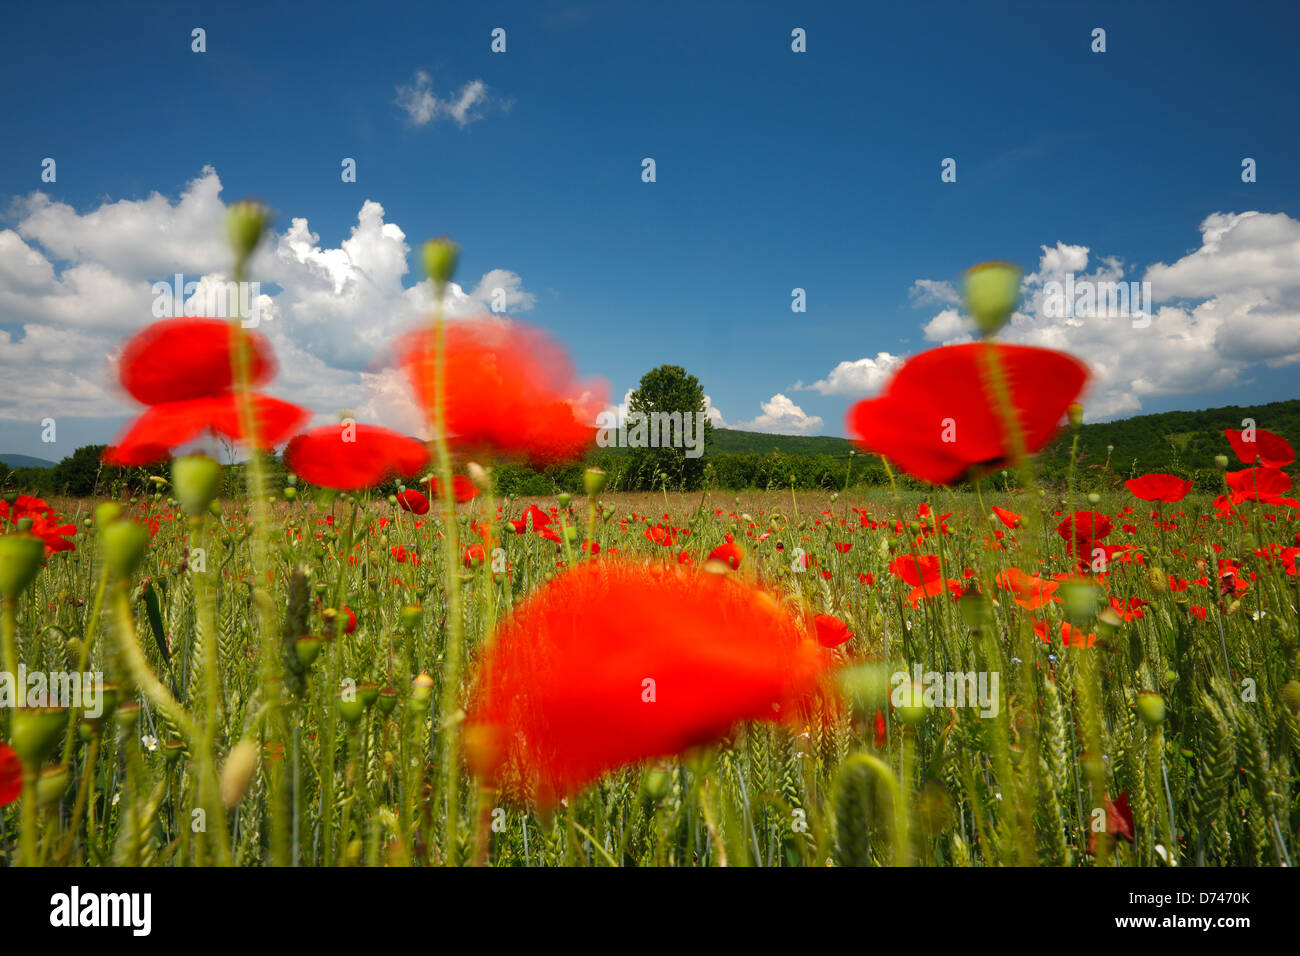 Poppy fields and clouds in spring - Stock Image